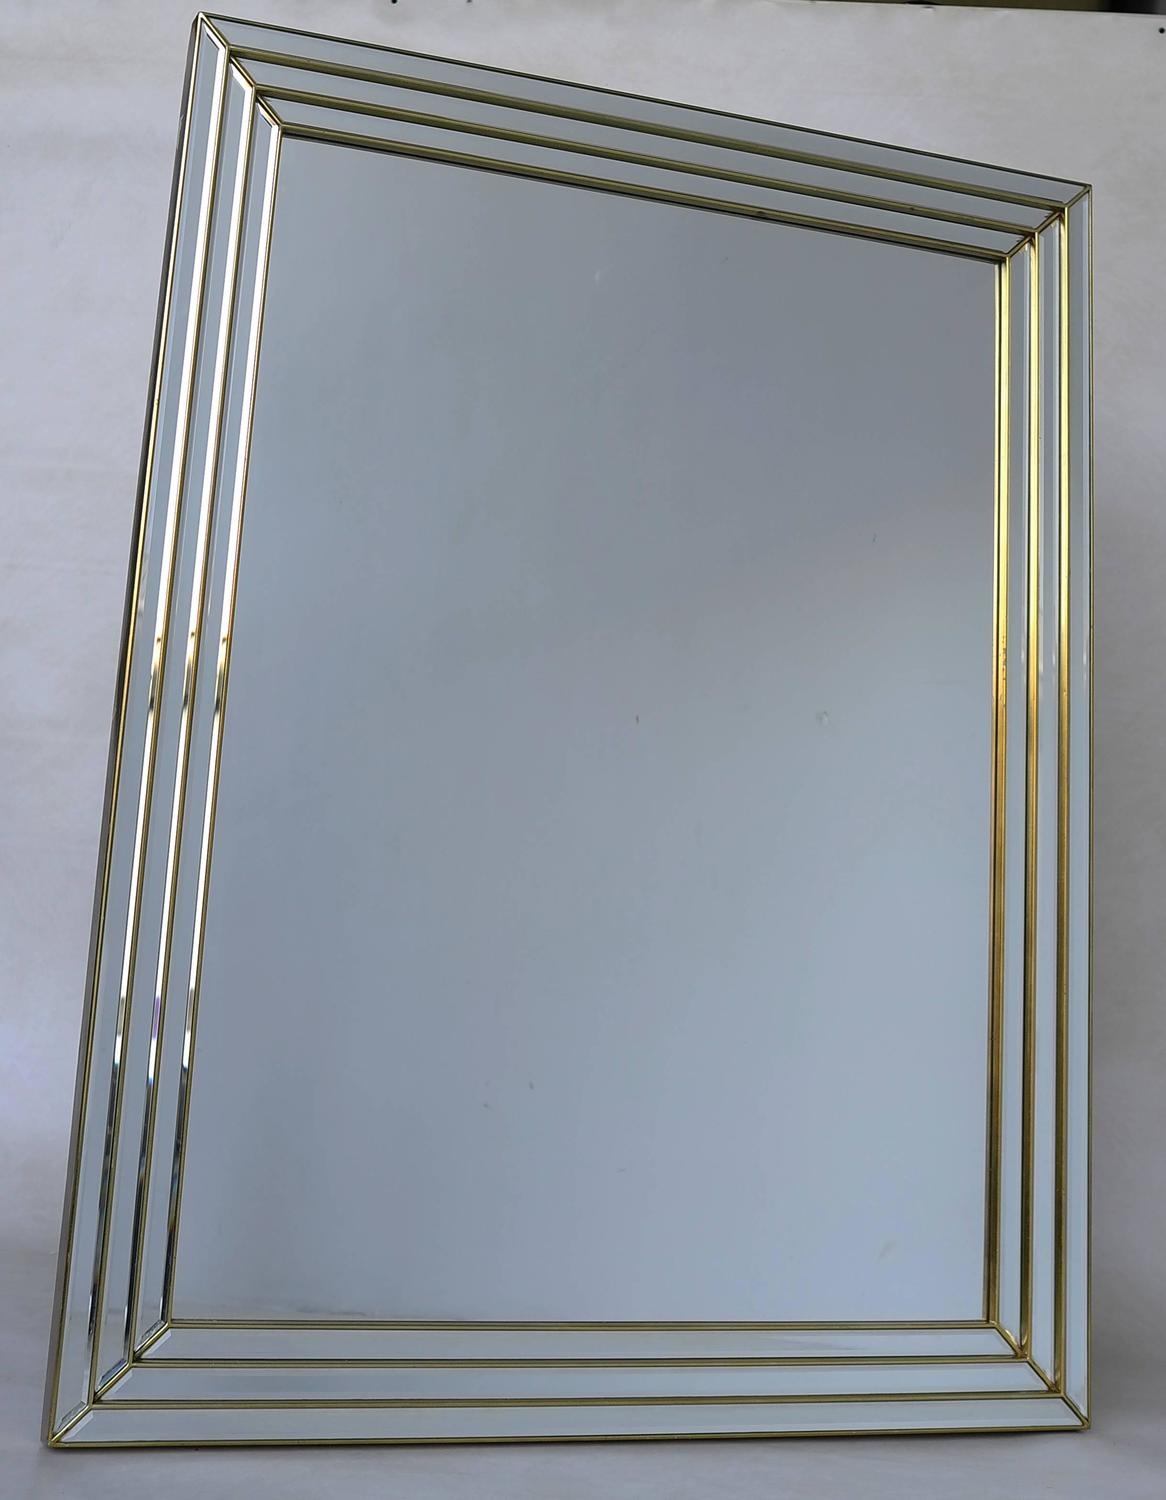 Large brass wall mirror belgium 1970s for sale at 1stdibs for Large wall mirrors for sale